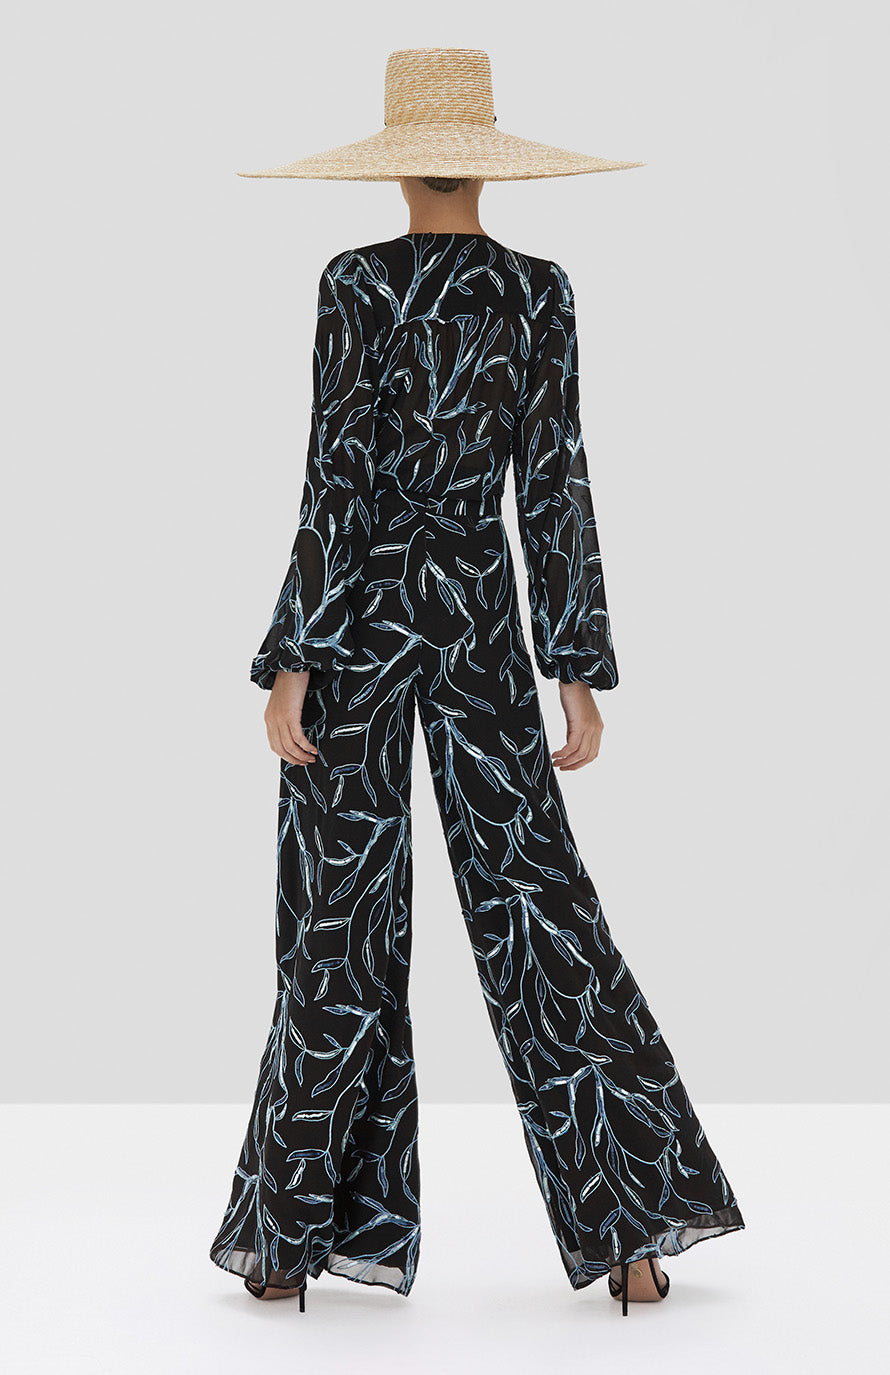 Alexis Valez Top and Fallen Pant in Black Sequin Embroidery from the Spring Summer 2020 Collection - Rear View